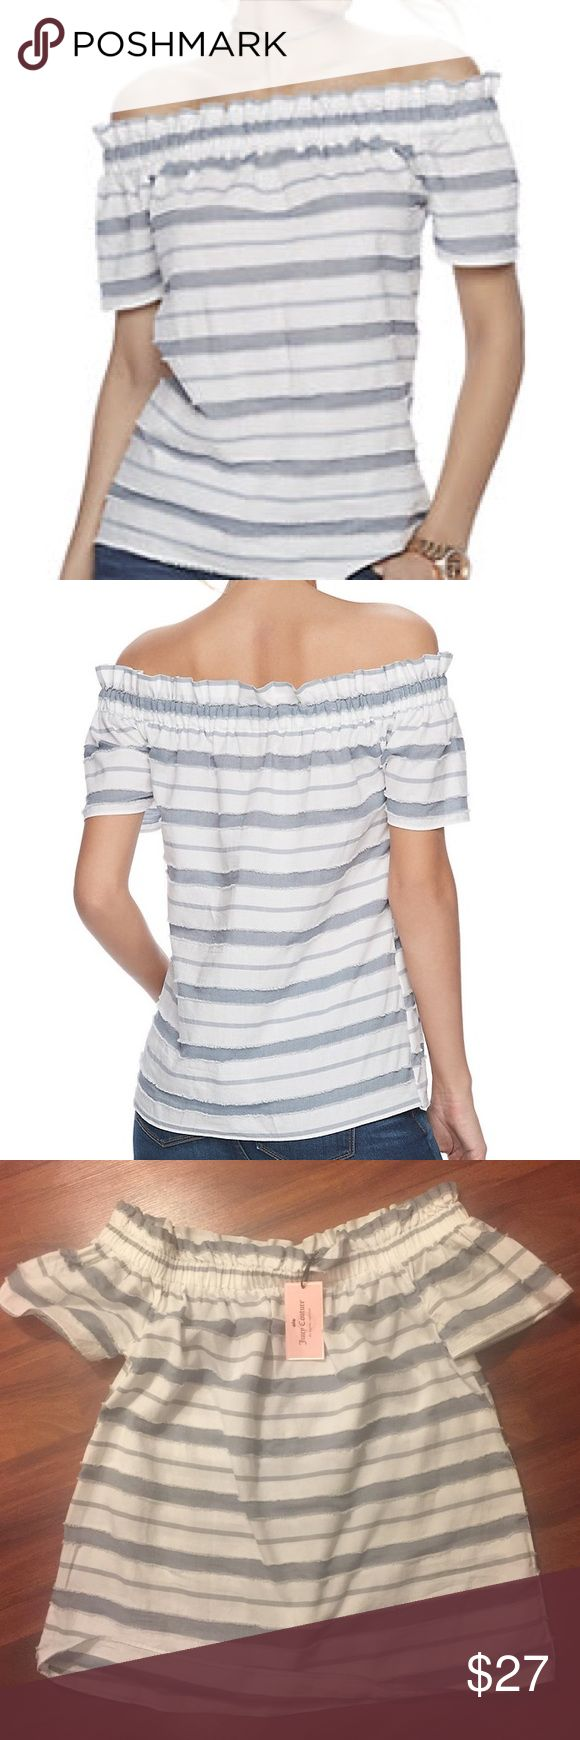 Declutter Event💃Juicy Couture Top ✨Off  Shoulder Price FIRM unless bundled‼️Juicy Couture is BACK and you won't see these prices again! ✨NWT✨Striped Nautical and feminine Juicy Couture top‼️Off  the shoulder is this seasons on fleek look . You'll love the trendy design and fit of this women's Juicy Couture 100% cotton.💥💥💥It's super gorgeous ‼️ Juicy Couture Tops